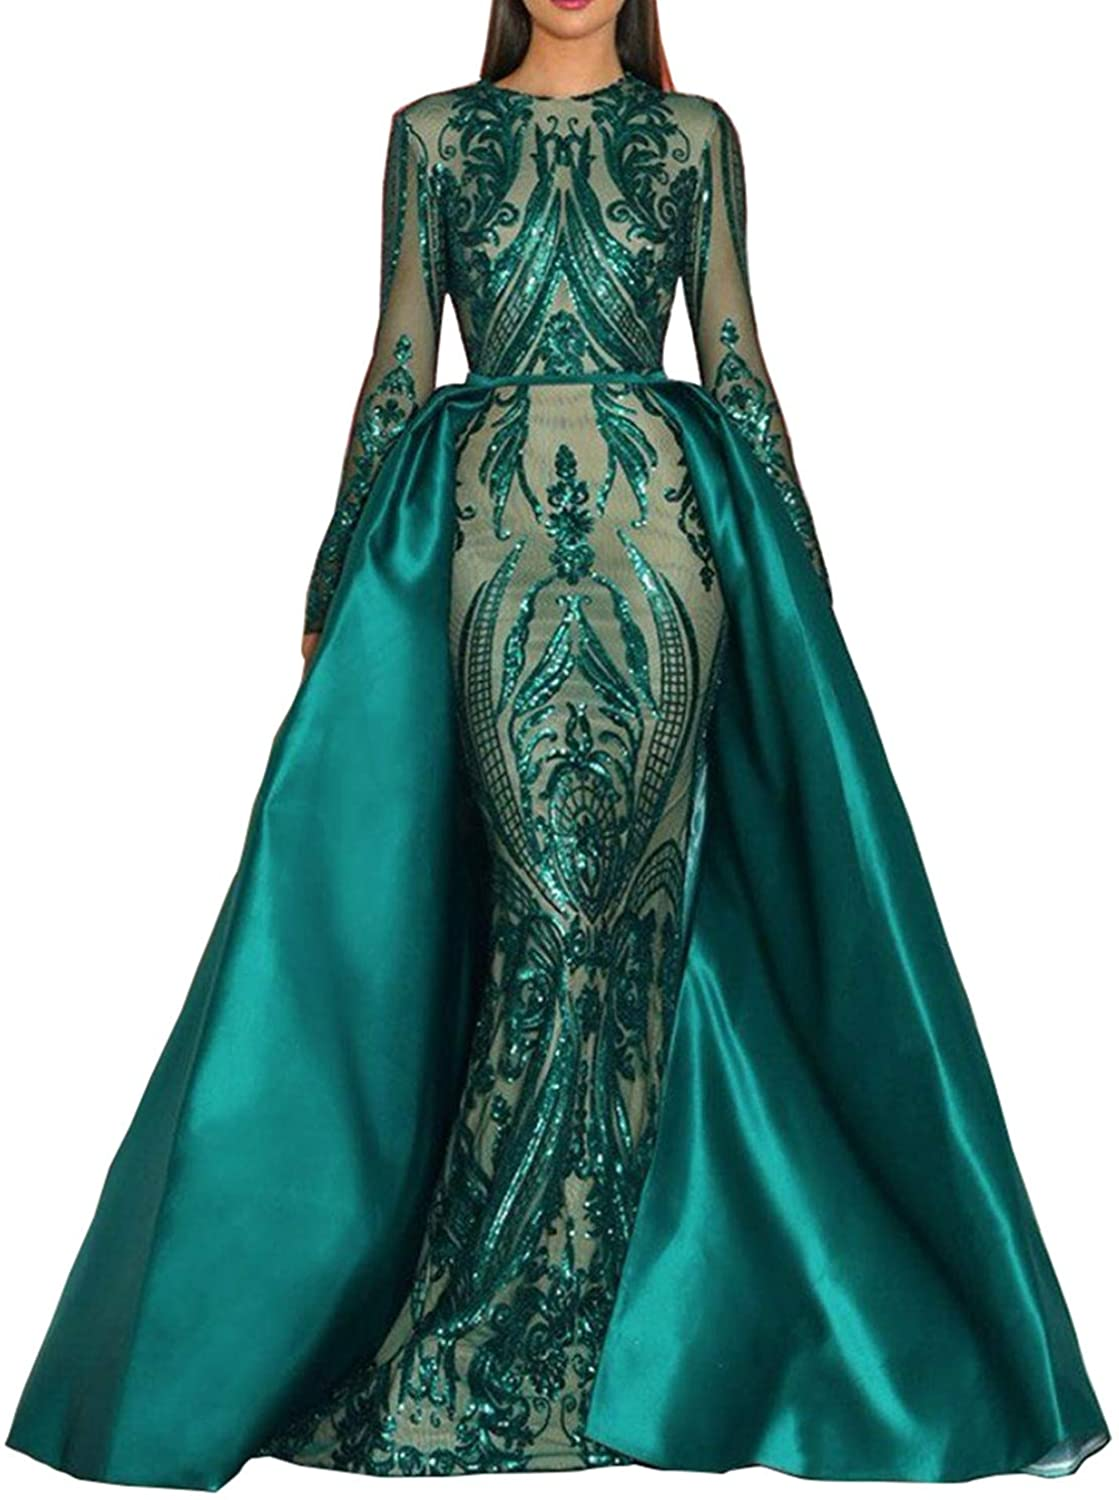 Aries Tuttle Green Sequined Satin Mermaid Prom Evening Party Dress Celebrity Pageant Gown Detachable Train